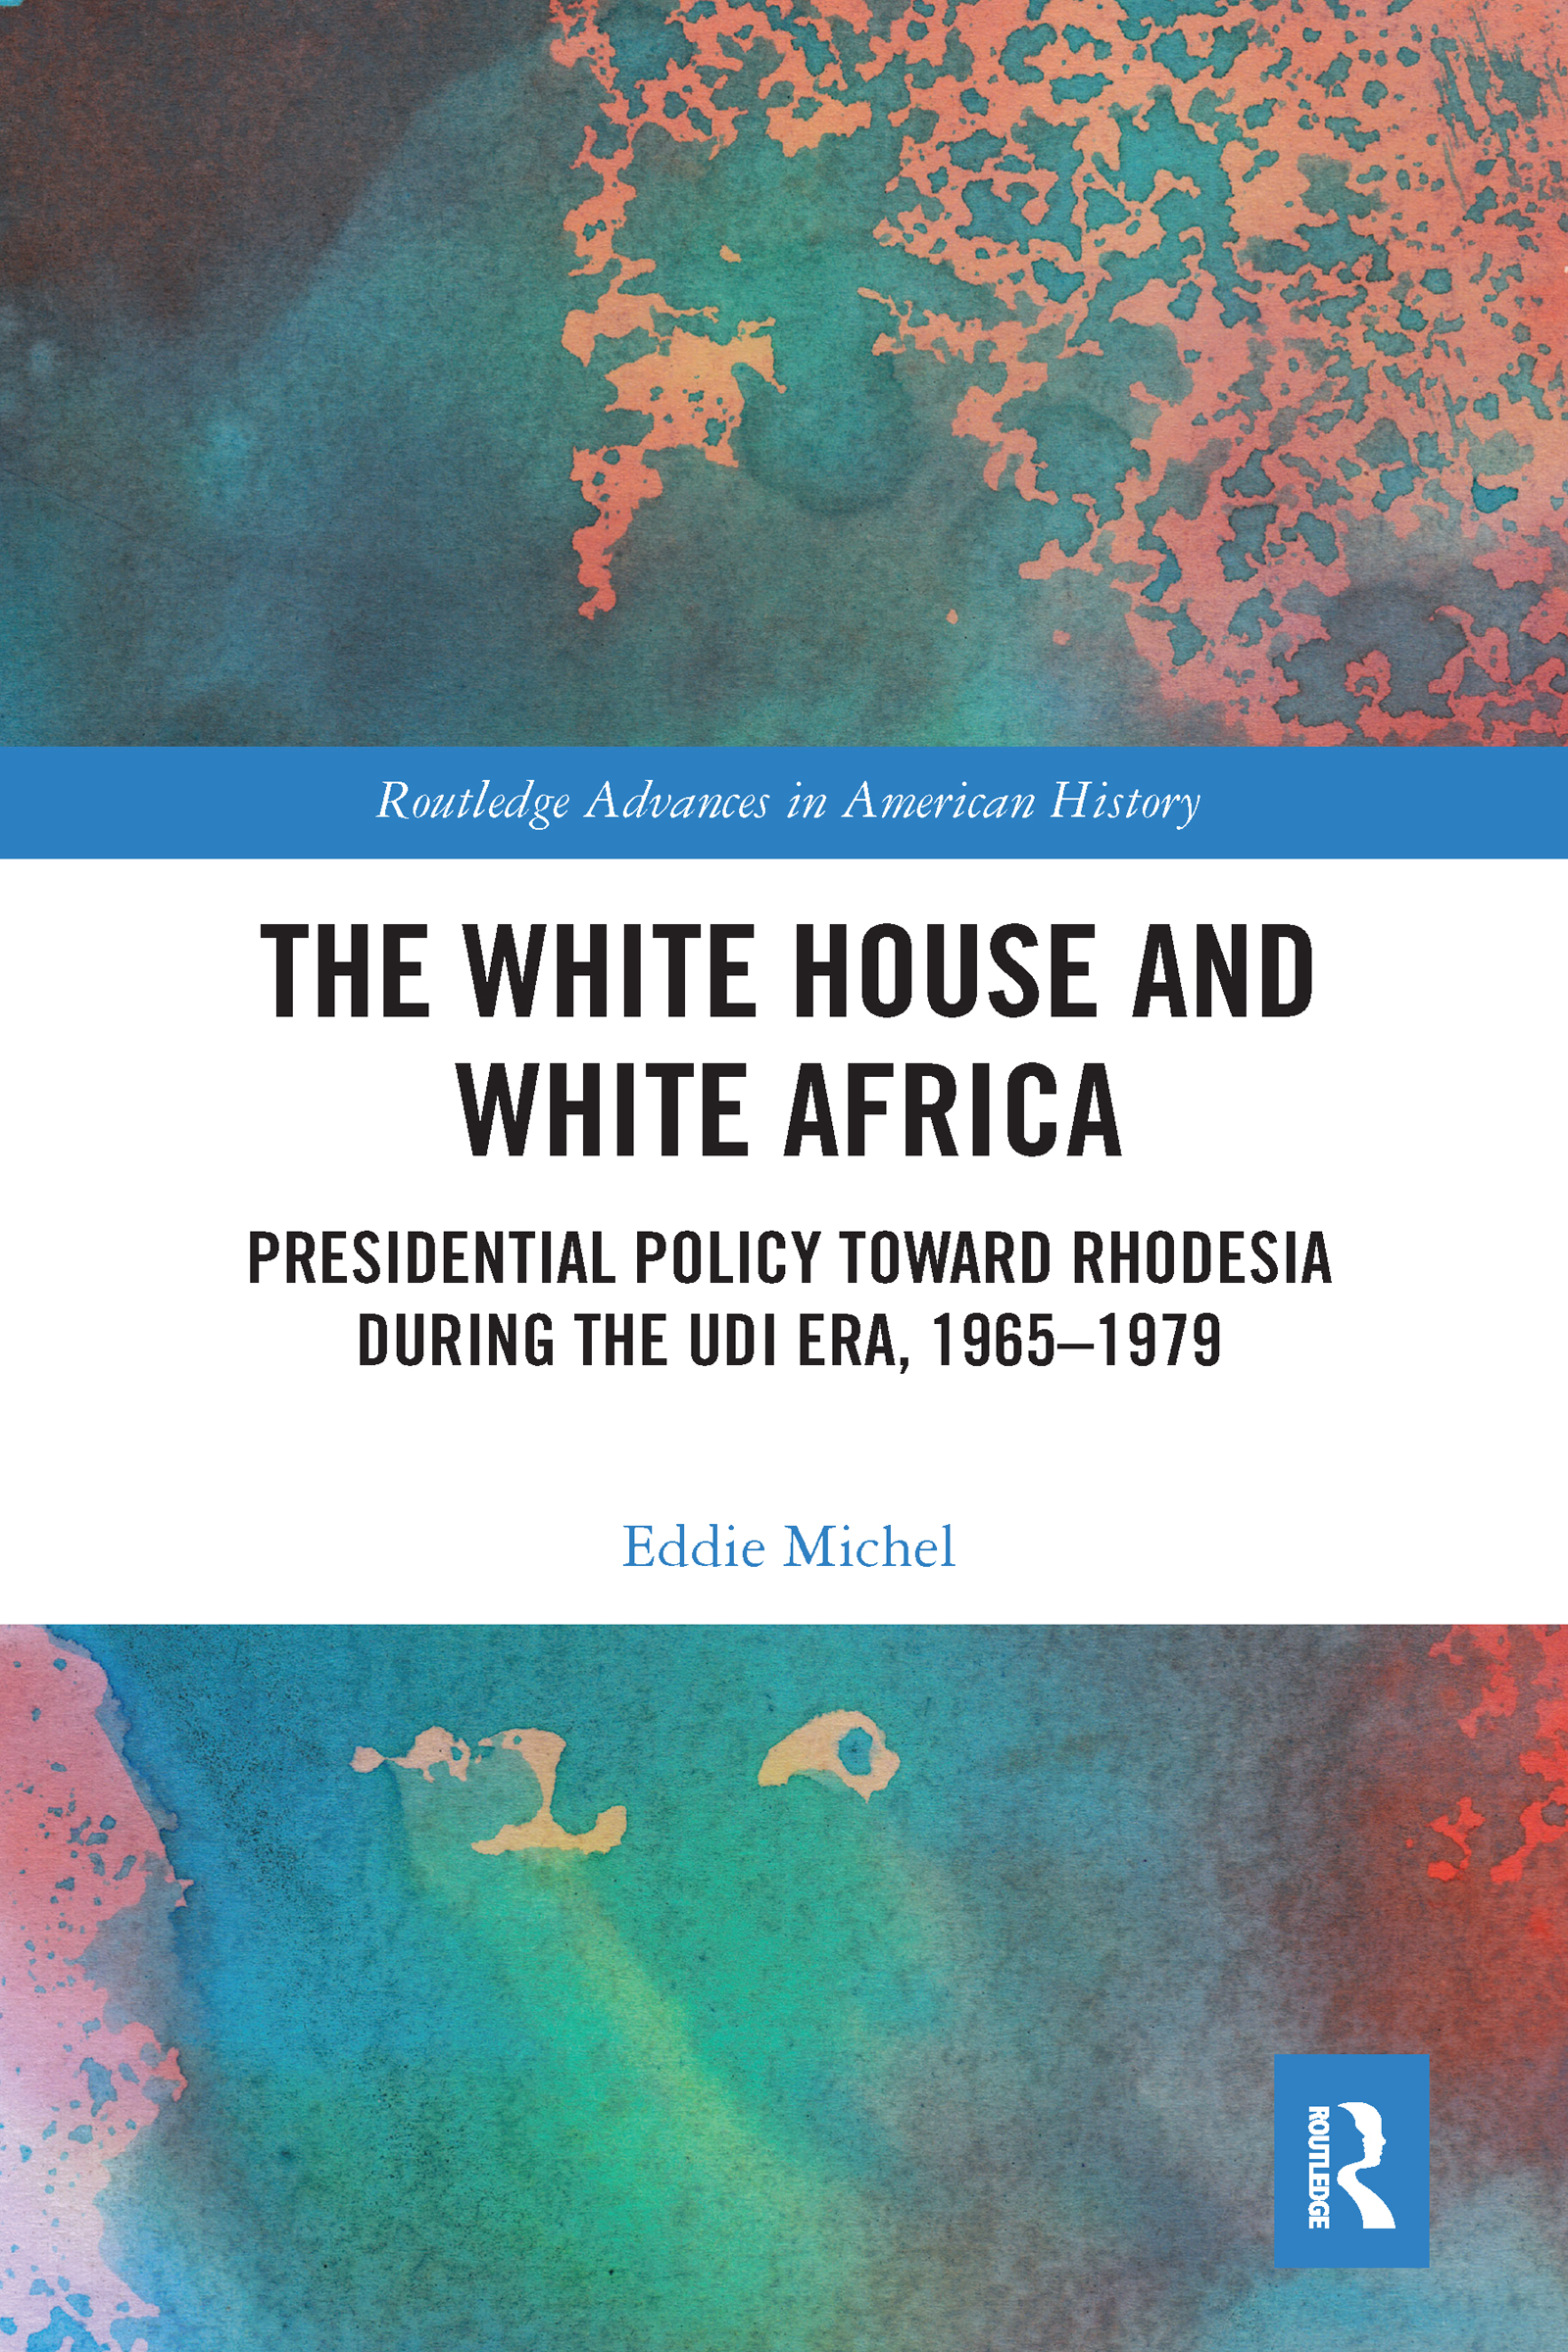 The White House and White Africa